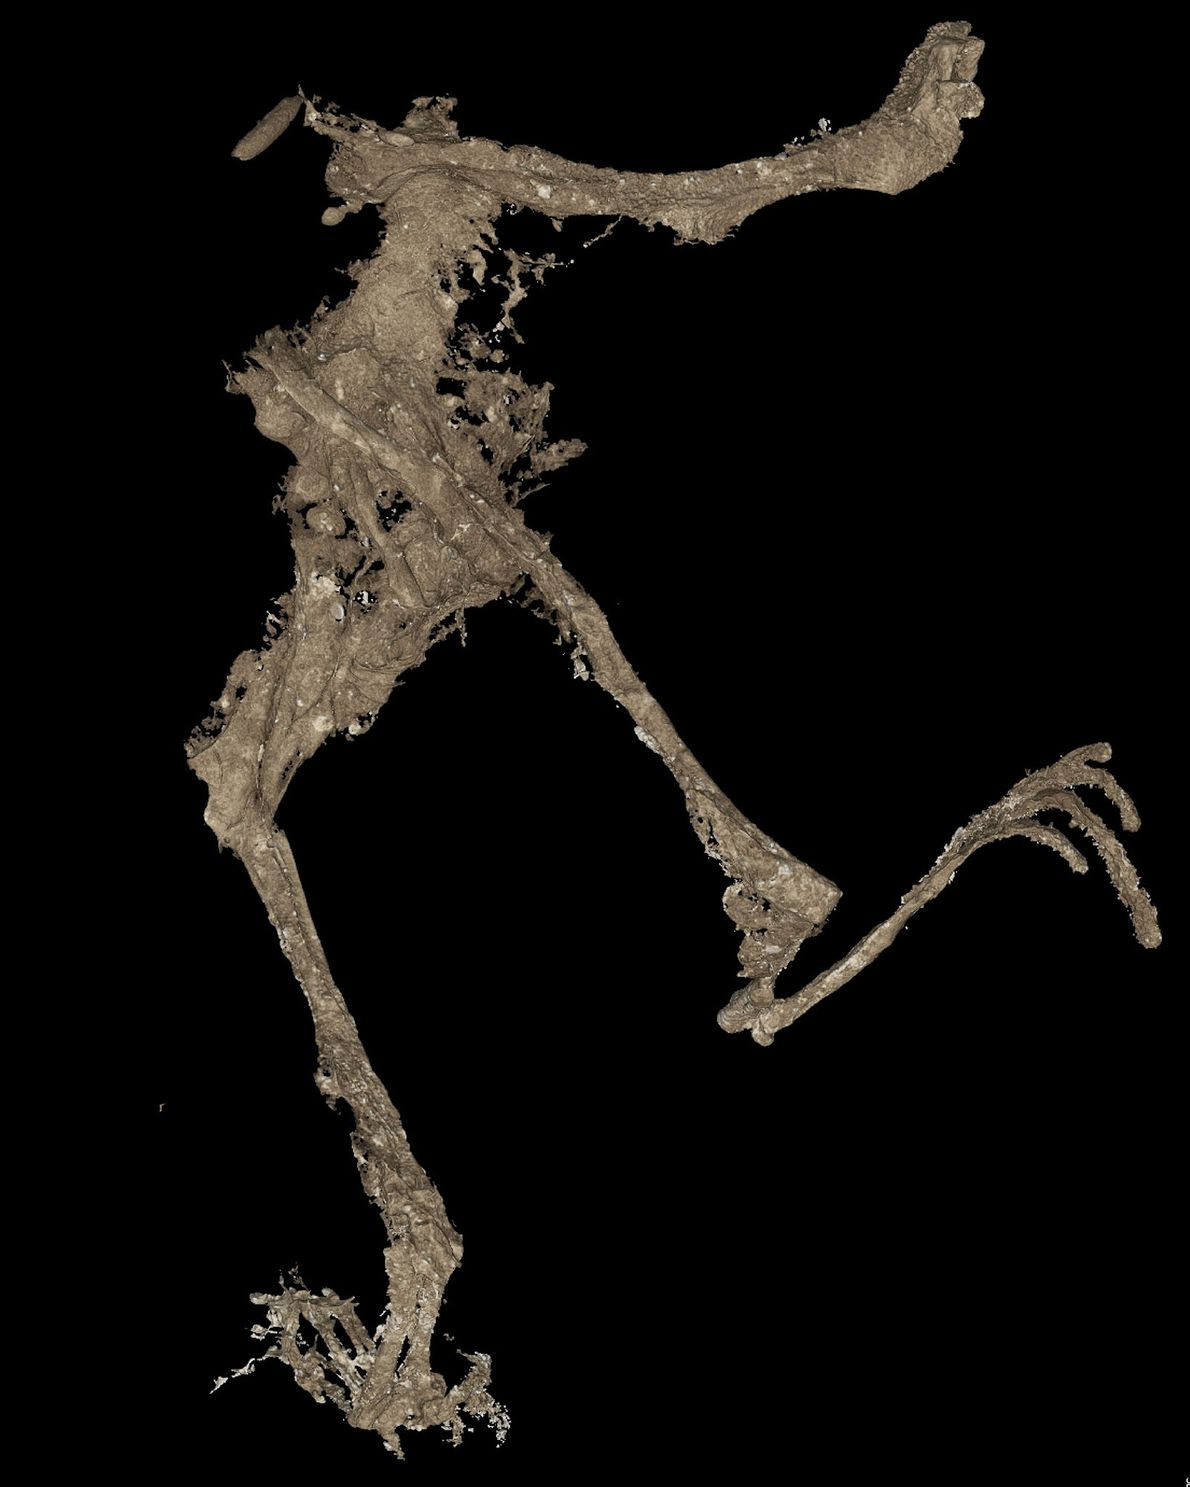 A 3-D scan captues the frog's body in greater detail.